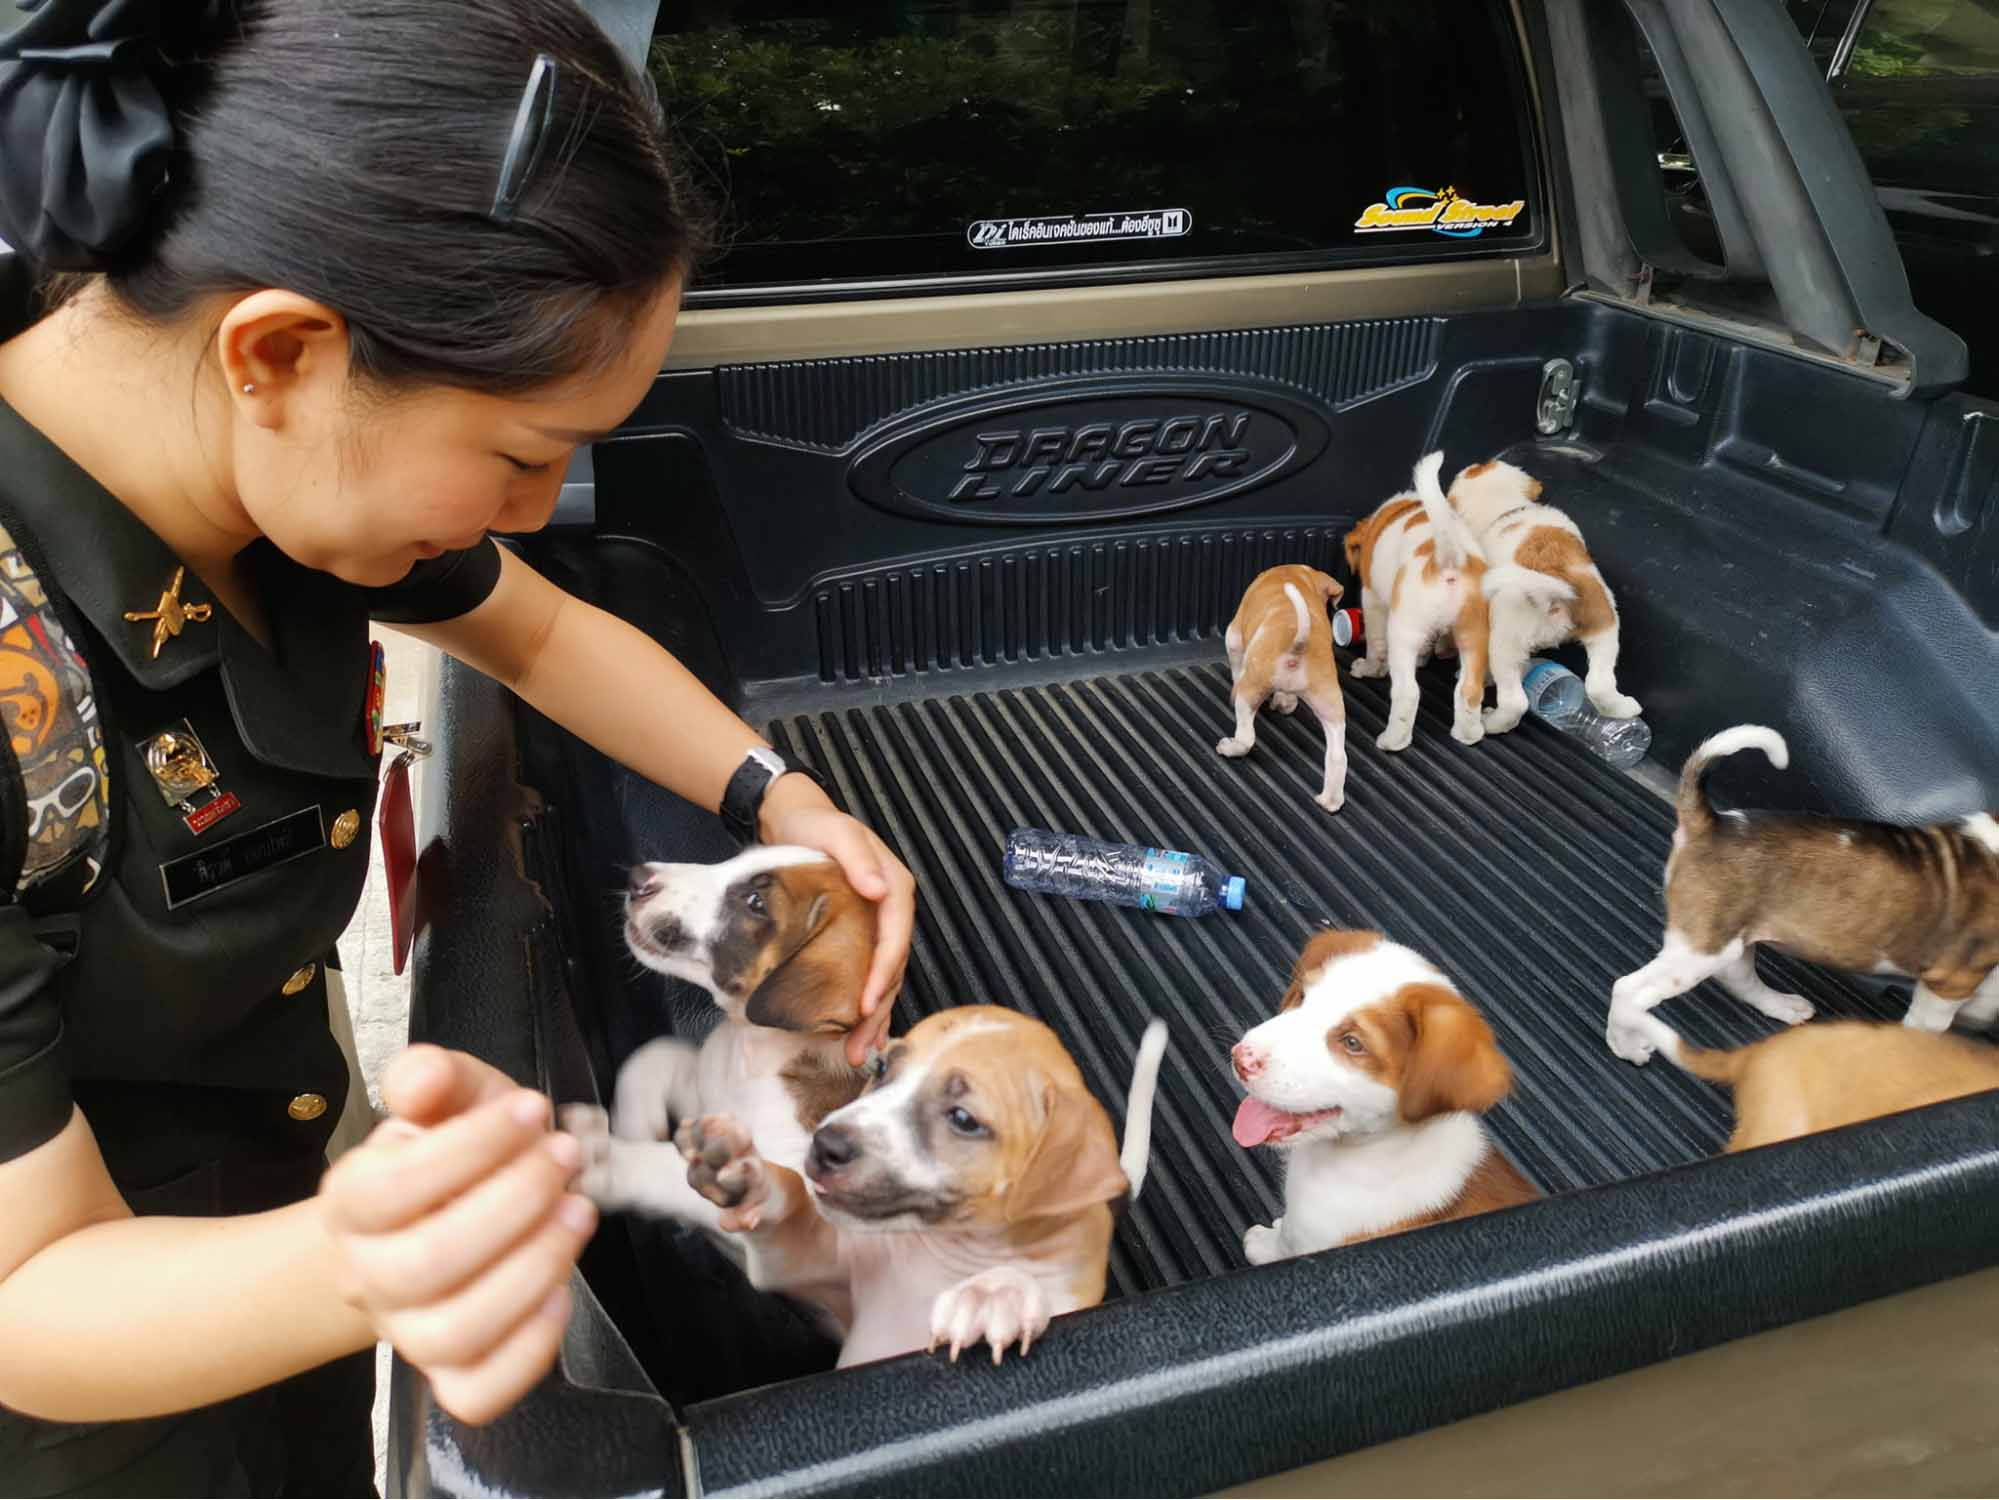 Man Rescues Puppies